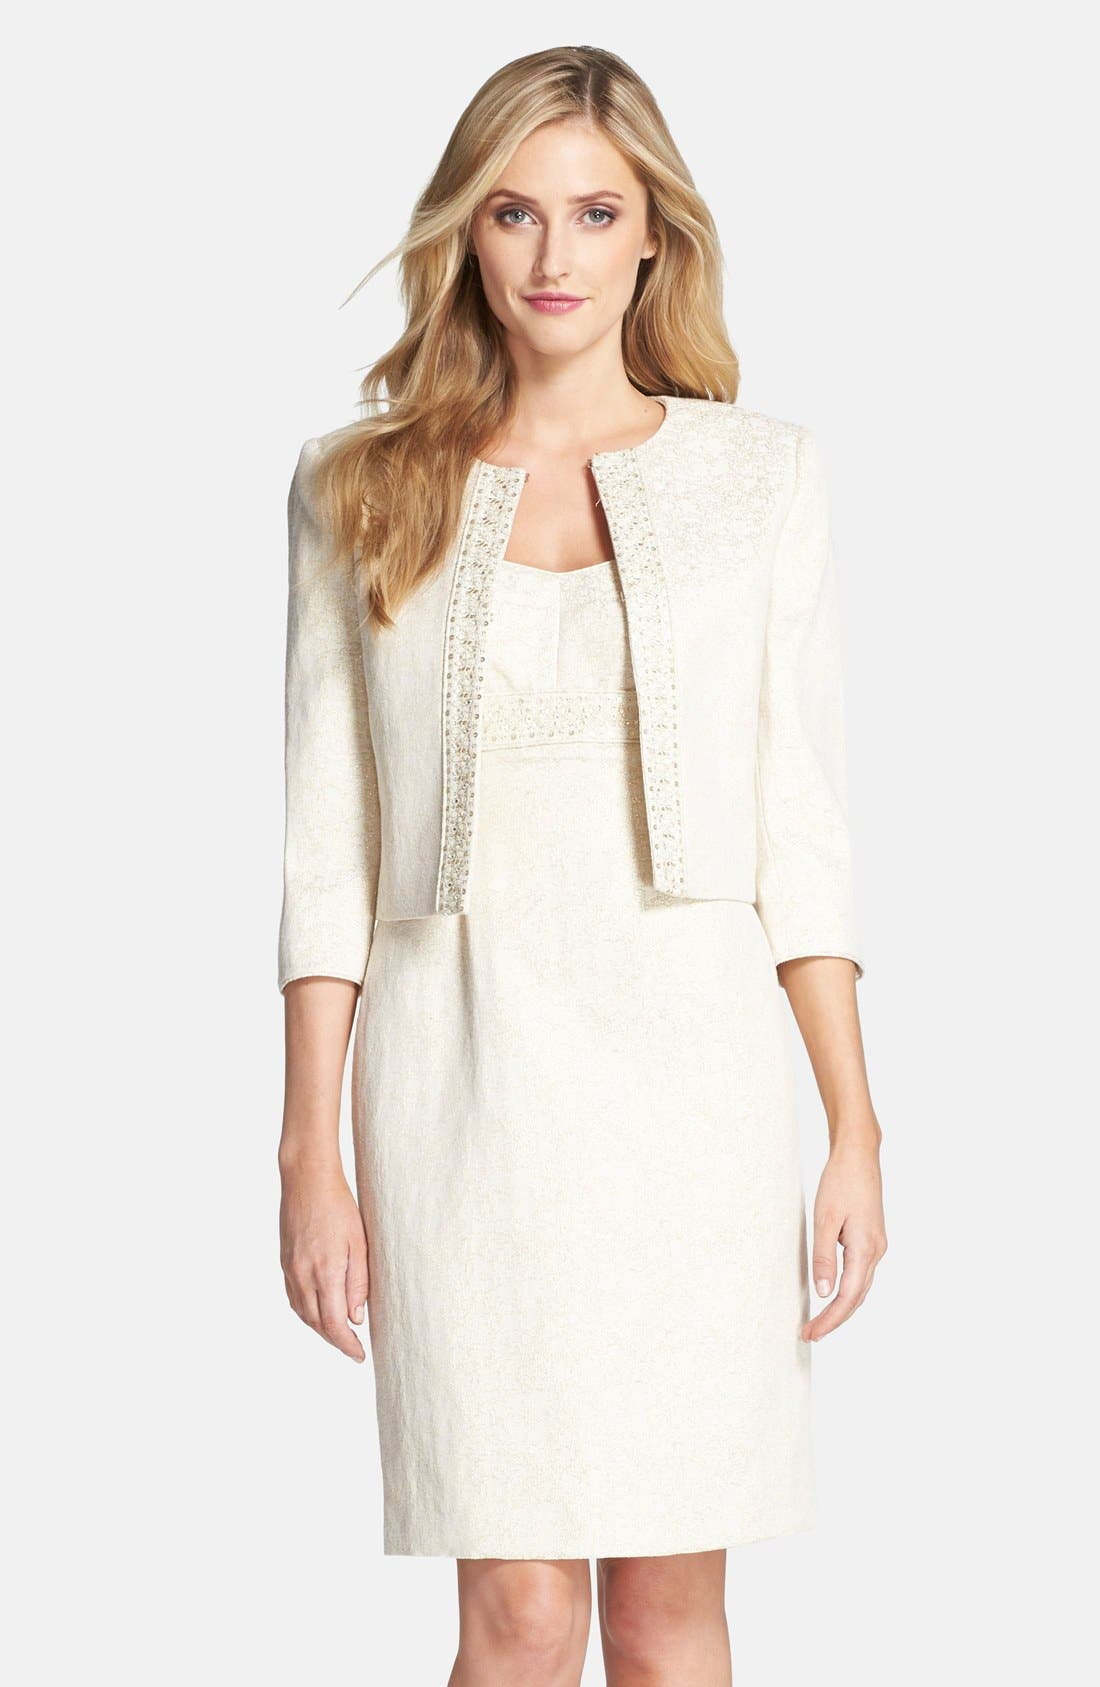 Alternate Image 1 Selected - Tahari Metallic Jacquard Jacket & Dress